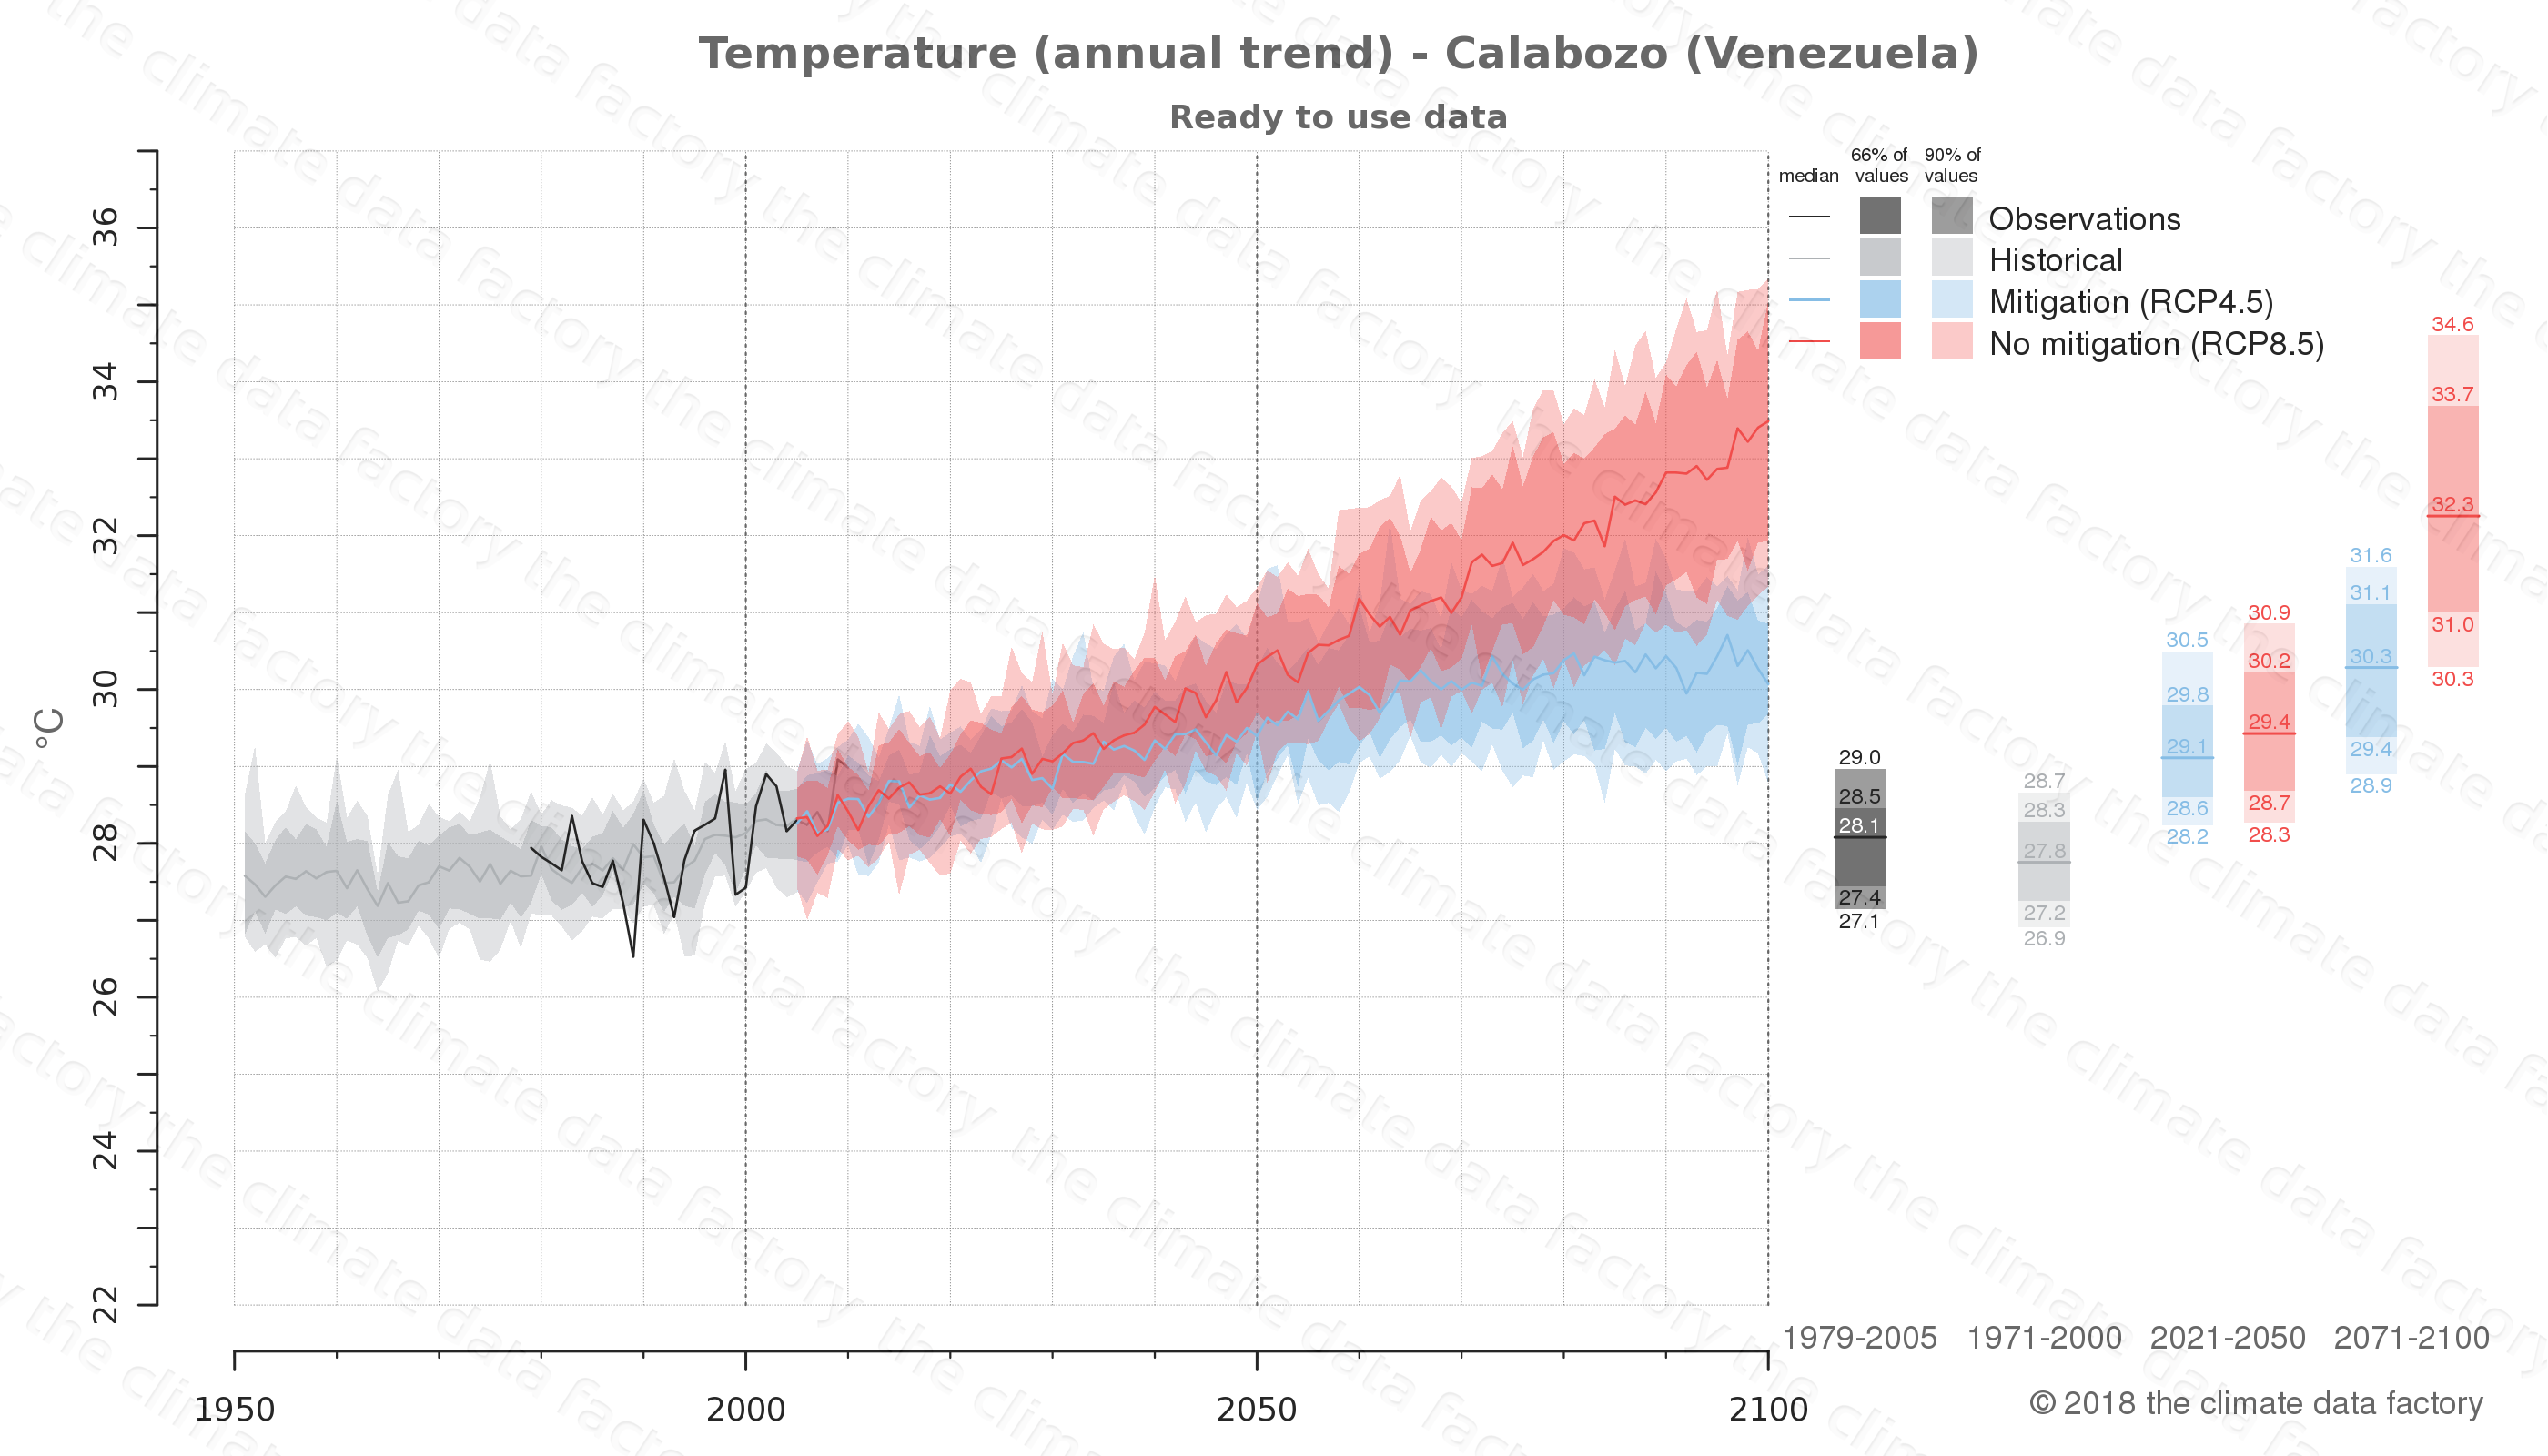 climate change data policy adaptation climate graph city data temperature calabozo venezuela